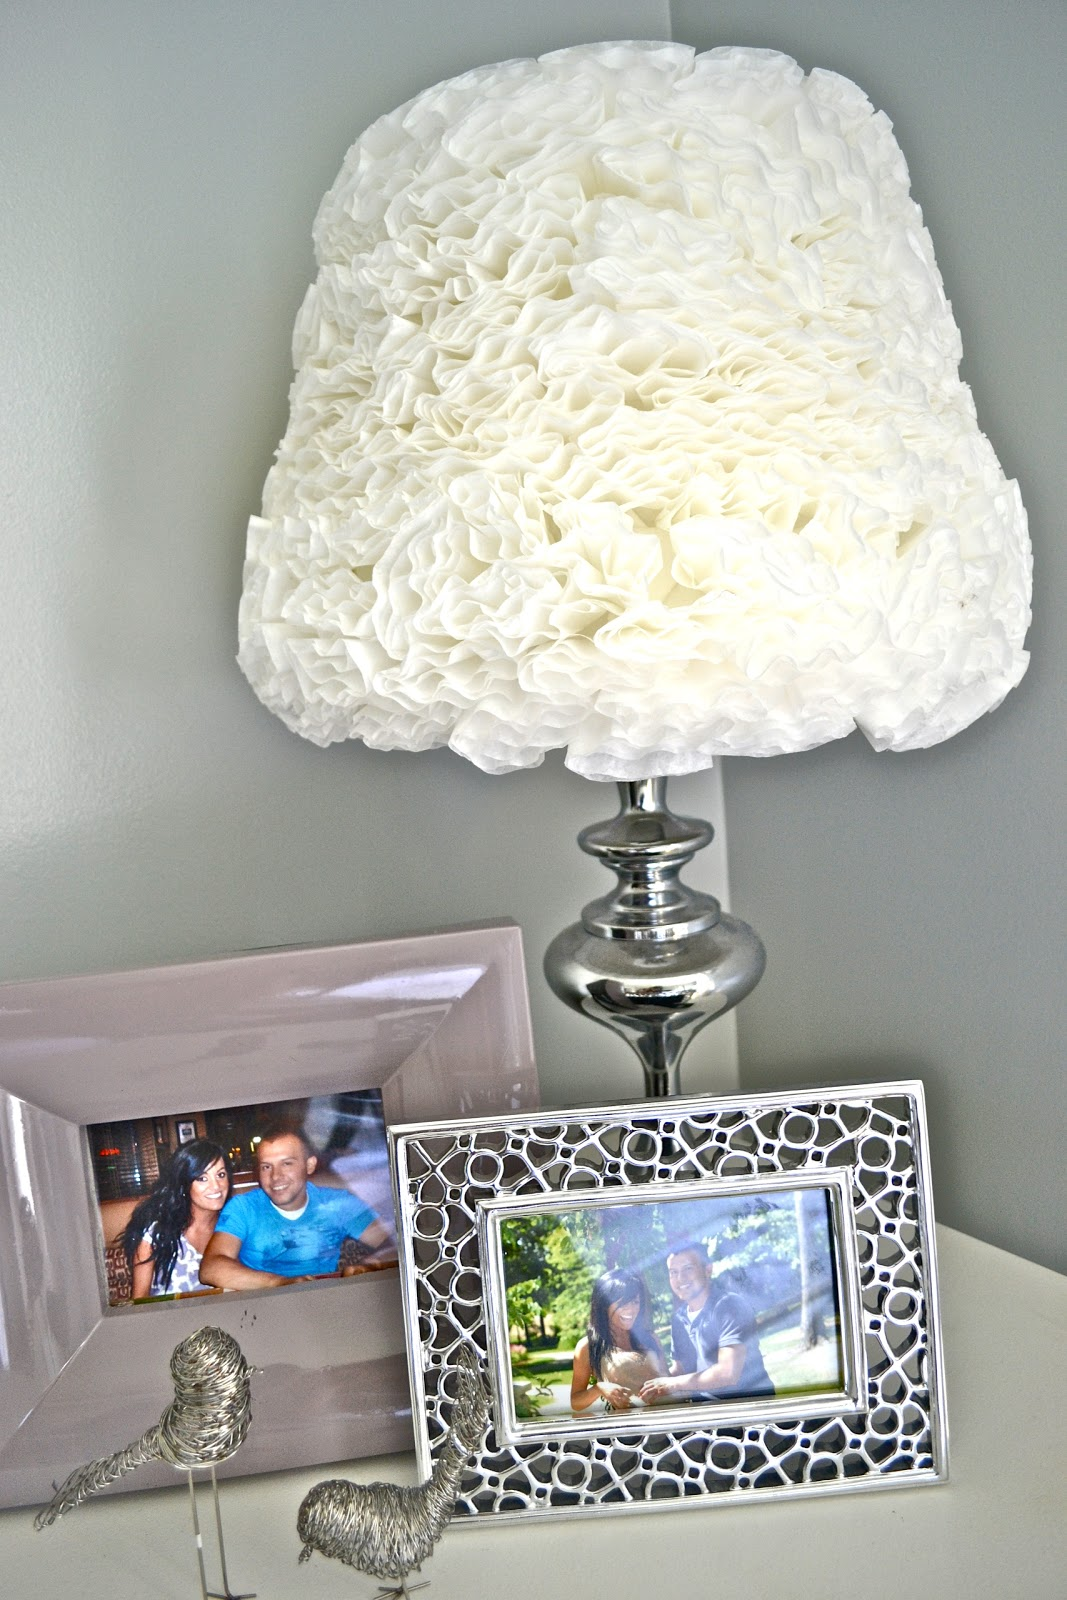 What Have They Done To Shade >> Coffee Filter Lamp Shade Liz Marie Blog